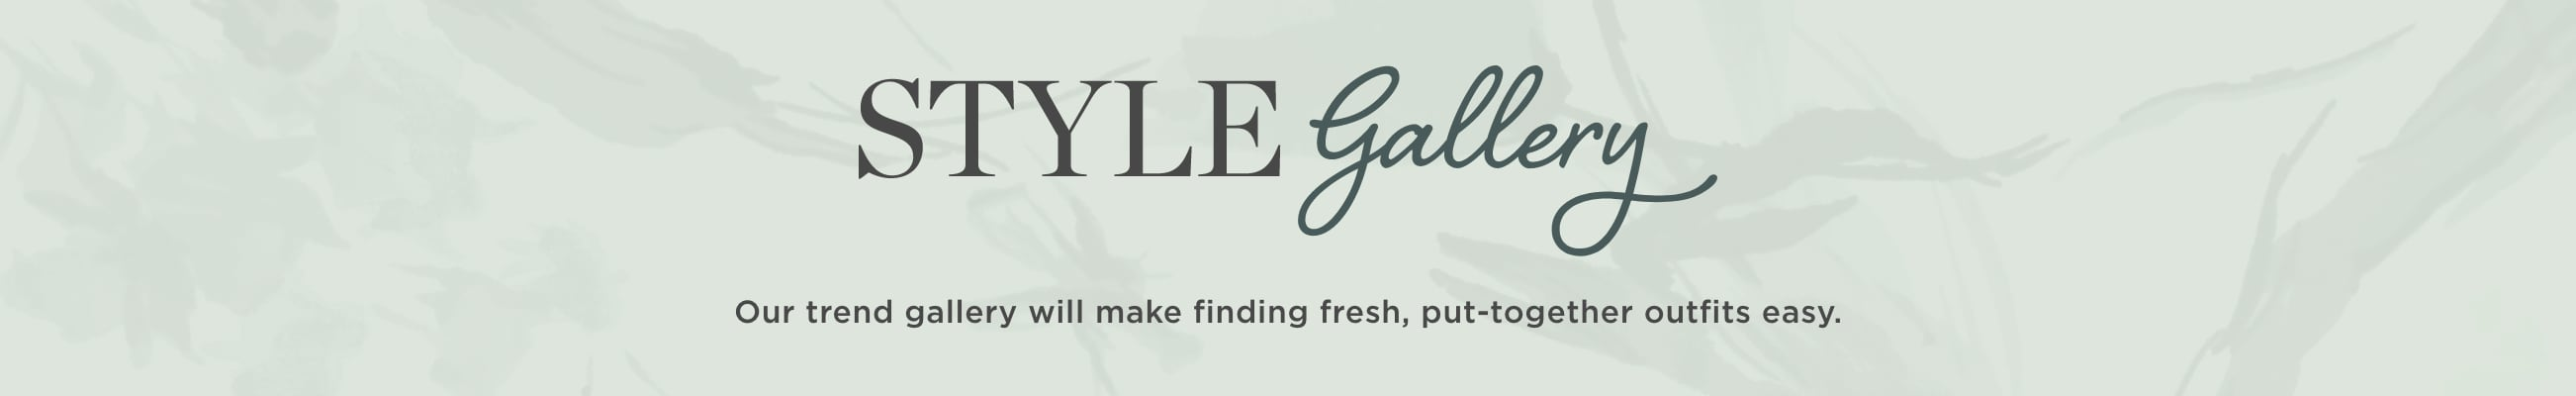 Style Gallery. Our trend gallery will make finding fresh, put-together outfits easy.